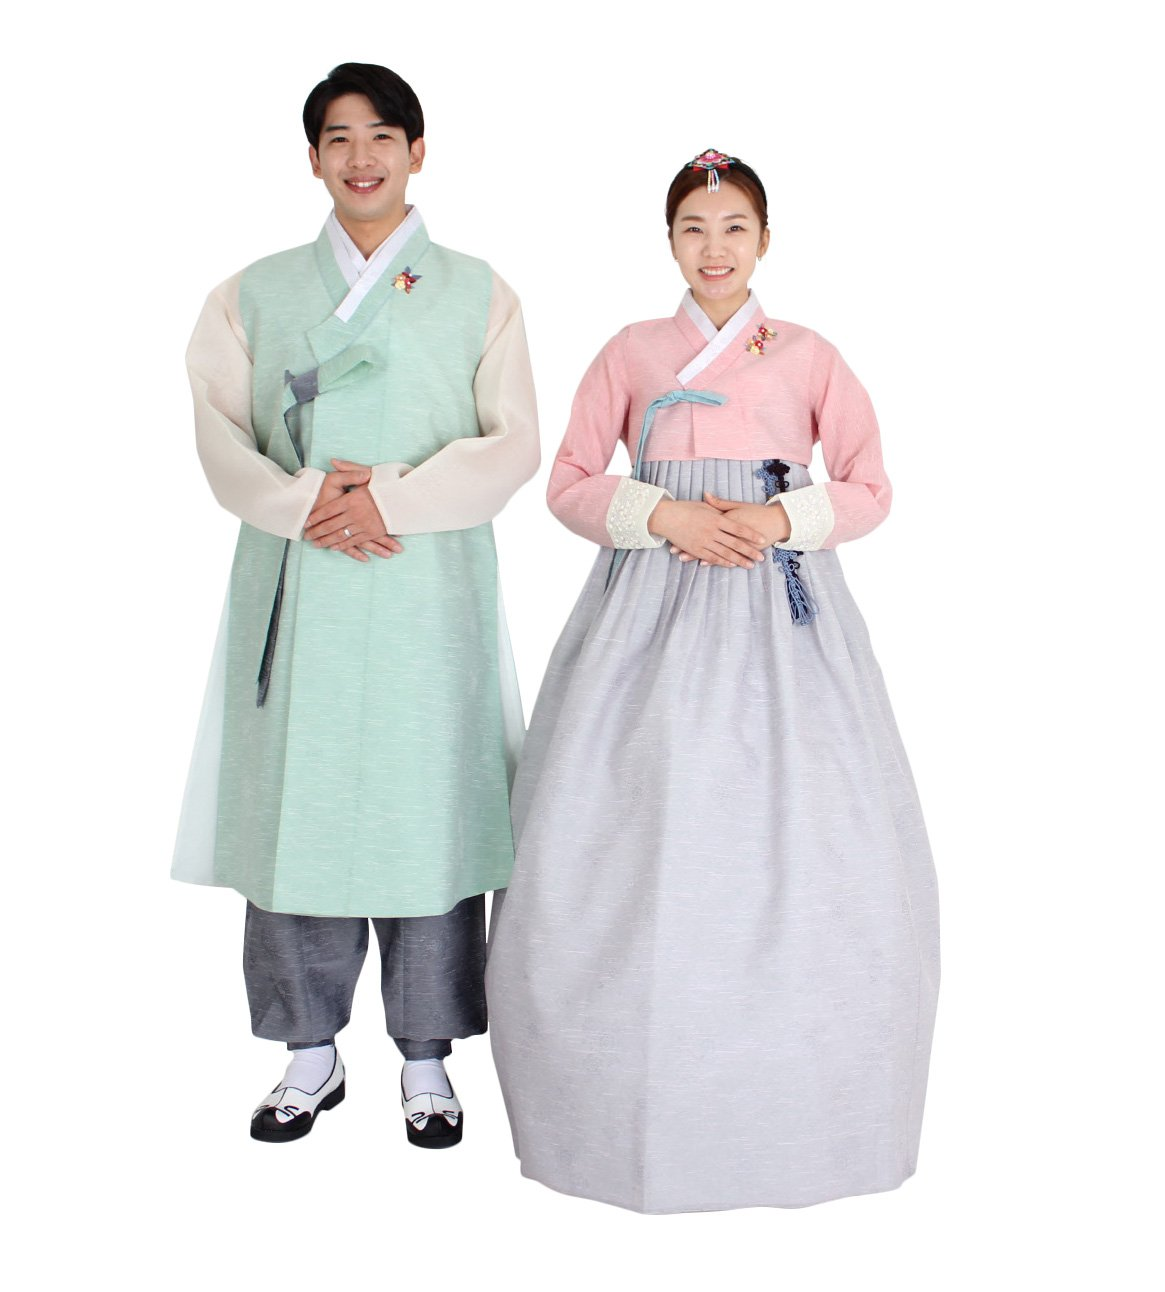 Hanbok Korea Traditional Costumes Women Men Couple Weddings Birthday Speical Ceremony co103 (66 (M) womens top)